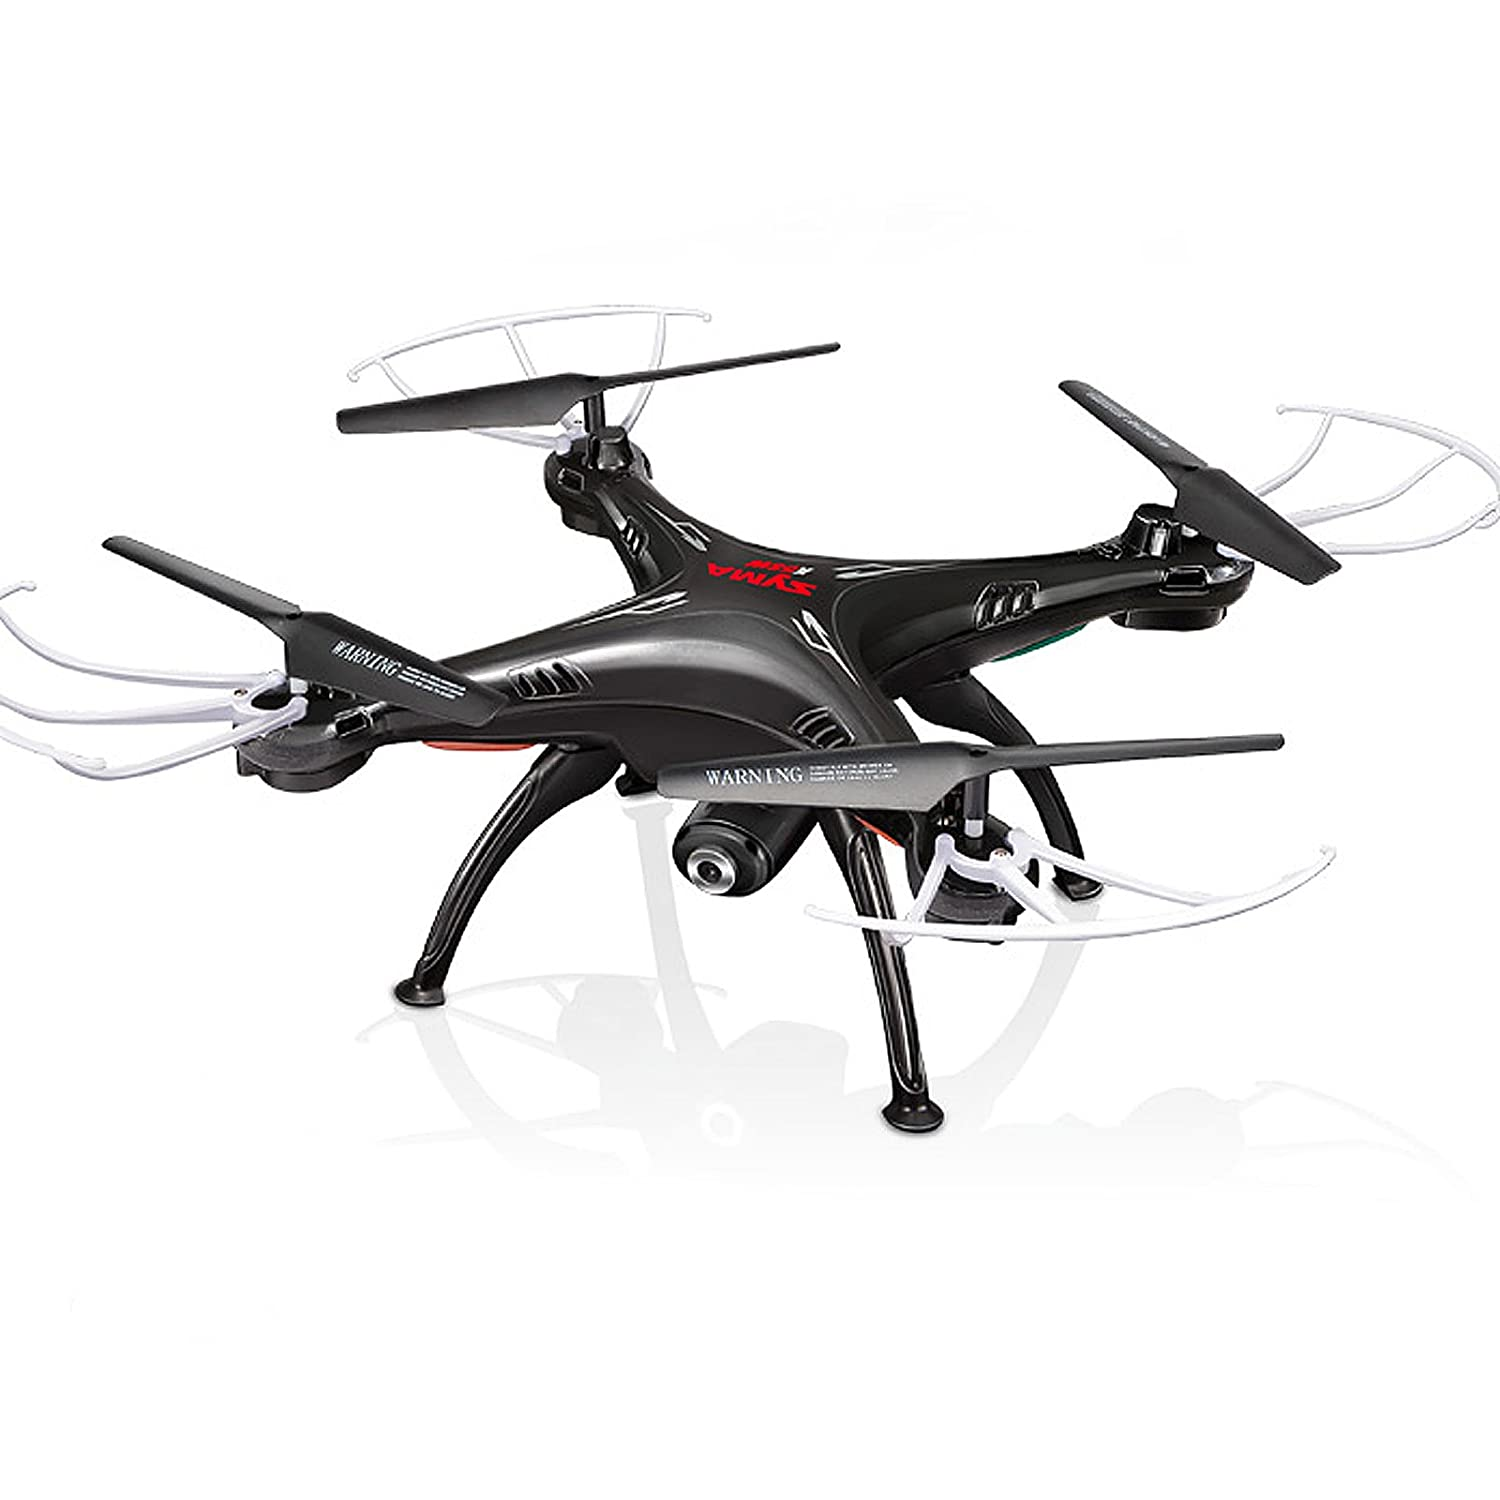 wifi controlled drone with Cheerwing Syma X5sw V3 Fpv Drone on Generic 127w Wifi Fpv 2 4ghz 4ch 6 Axis Gyro 0 3mp Rtf Remote Control Mini Pocket Drone White 535769 additionally Cheerwing Syma X5sw V3 Fpv Drone additionally Hackers In Residence The Tethered Quad in addition Revell Control X Spy 2 Wifi Quadcopter Rtf Drone moreover Anura Flying Camera Drone By Aericam.